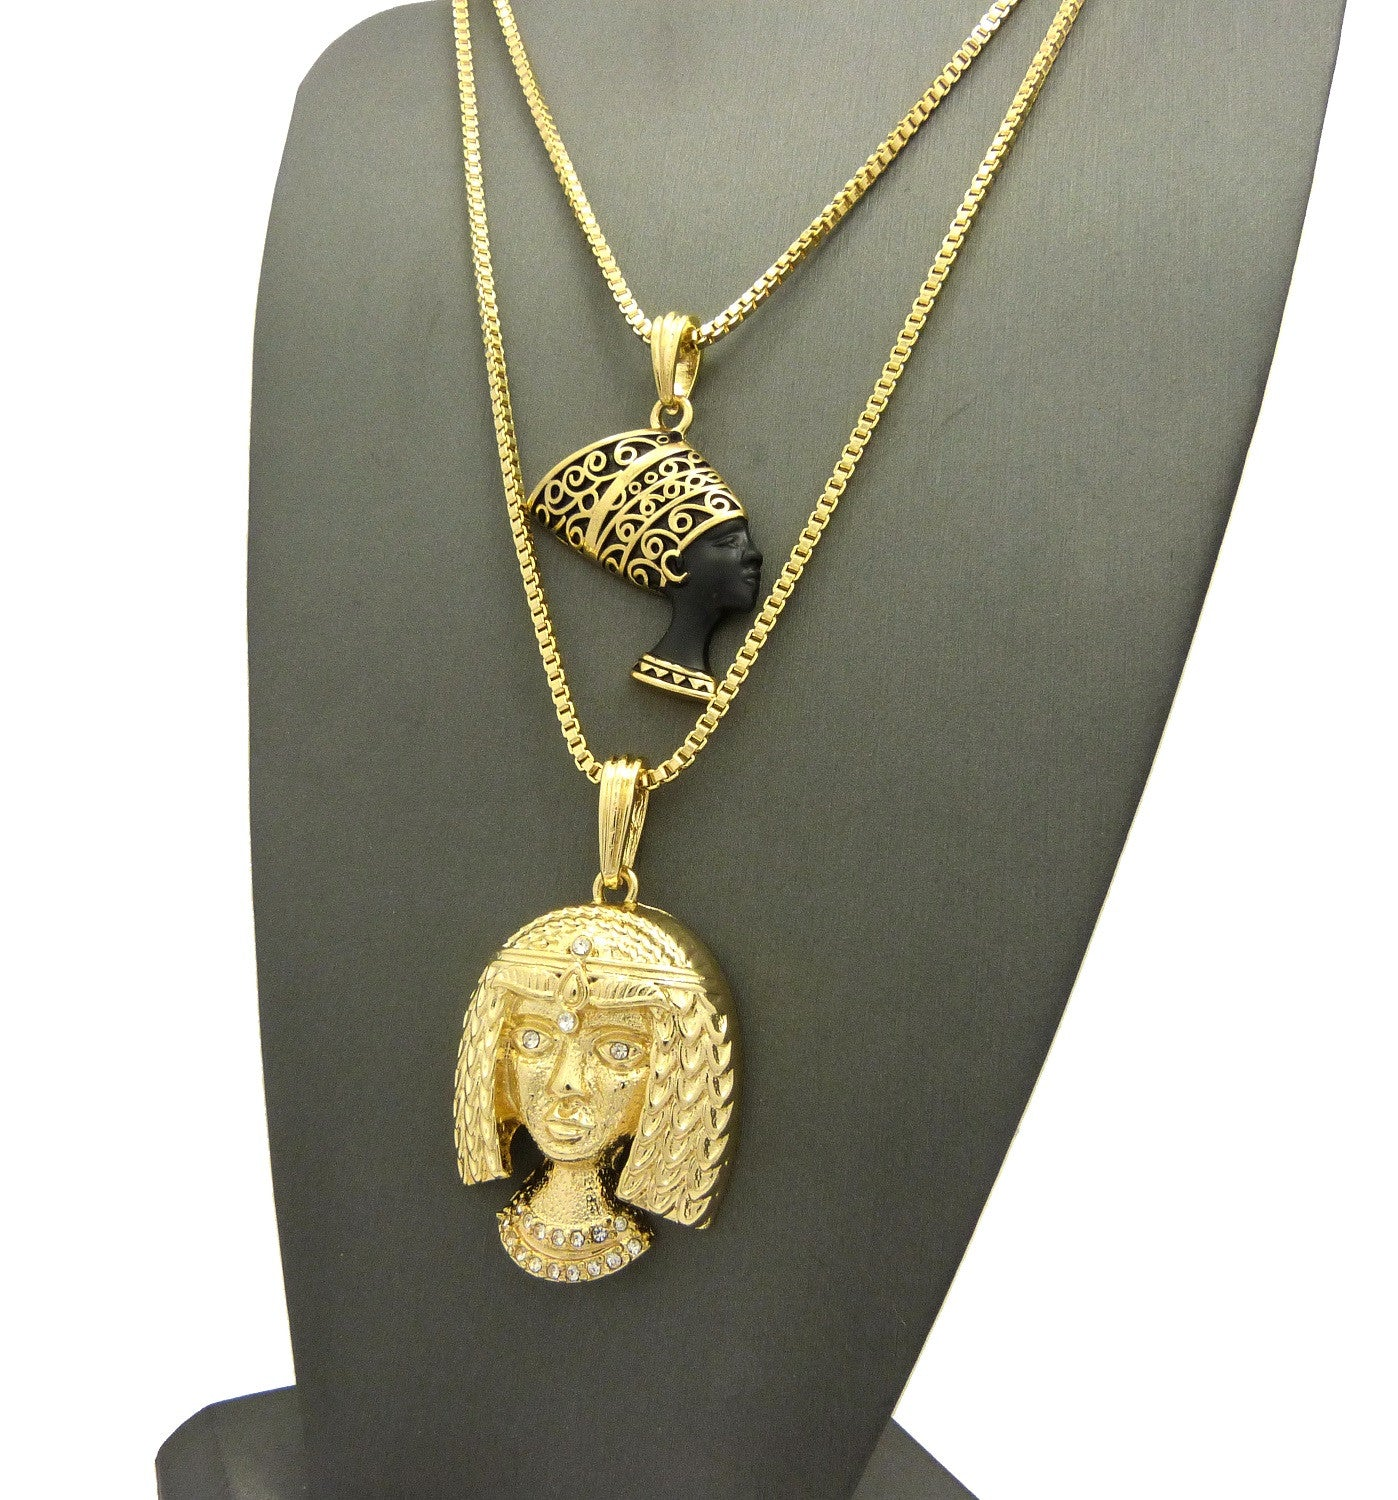 2 Chain Set: 18k Gold Plated Nefertiti and Cleopatra